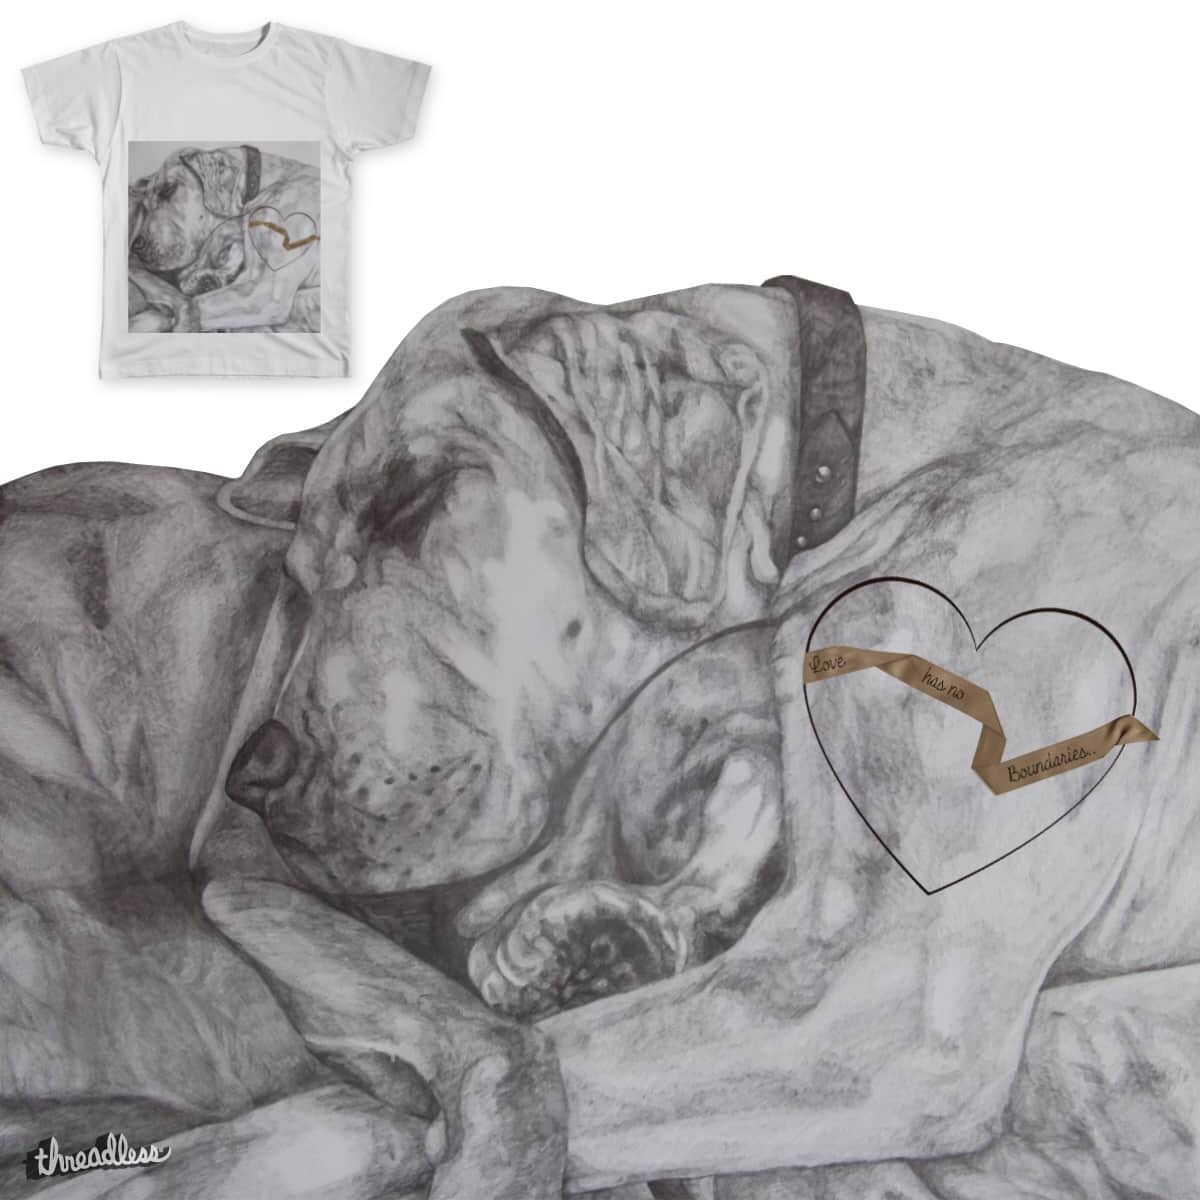 Unconditional Love by Nmaiklem on Threadless